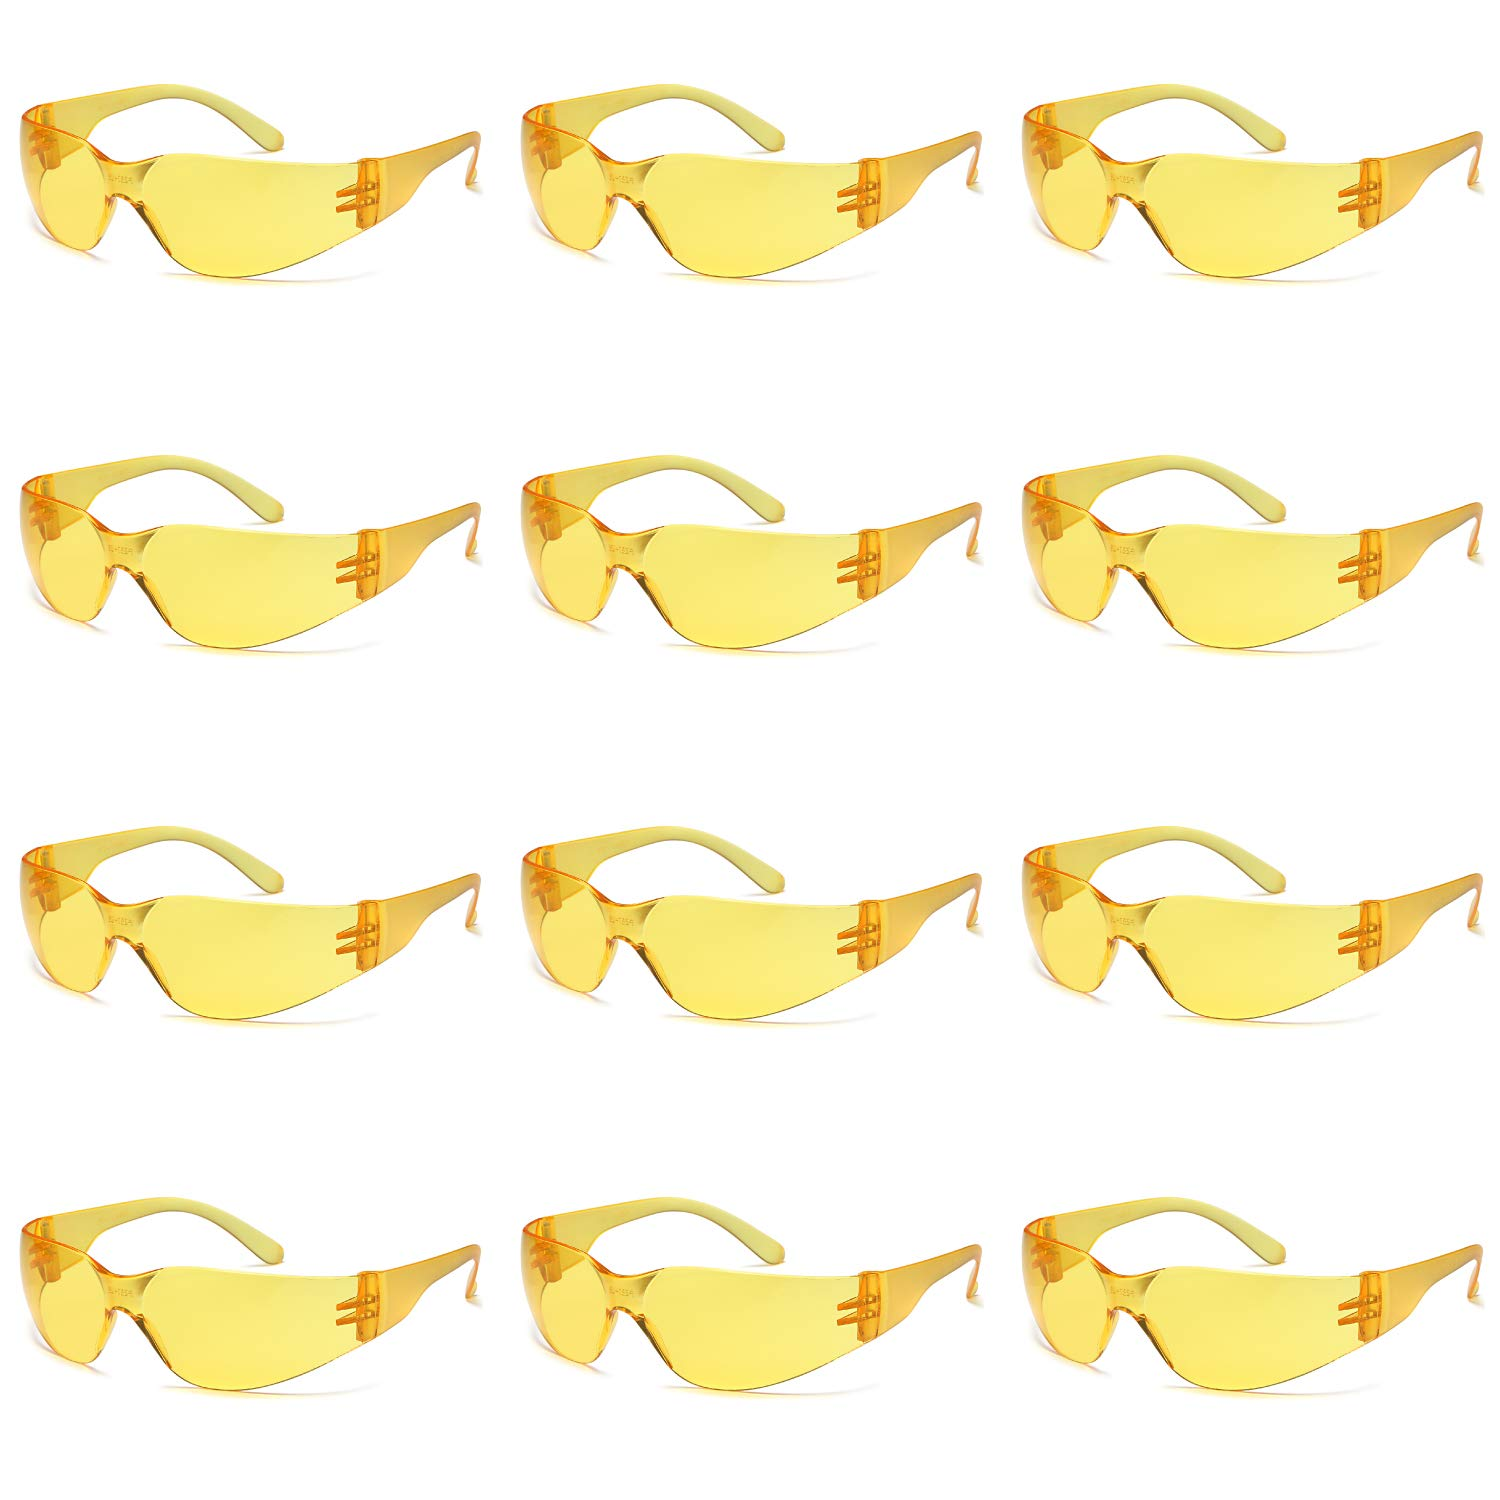 Safety Shooting Glasses 12x Protective Eyewear